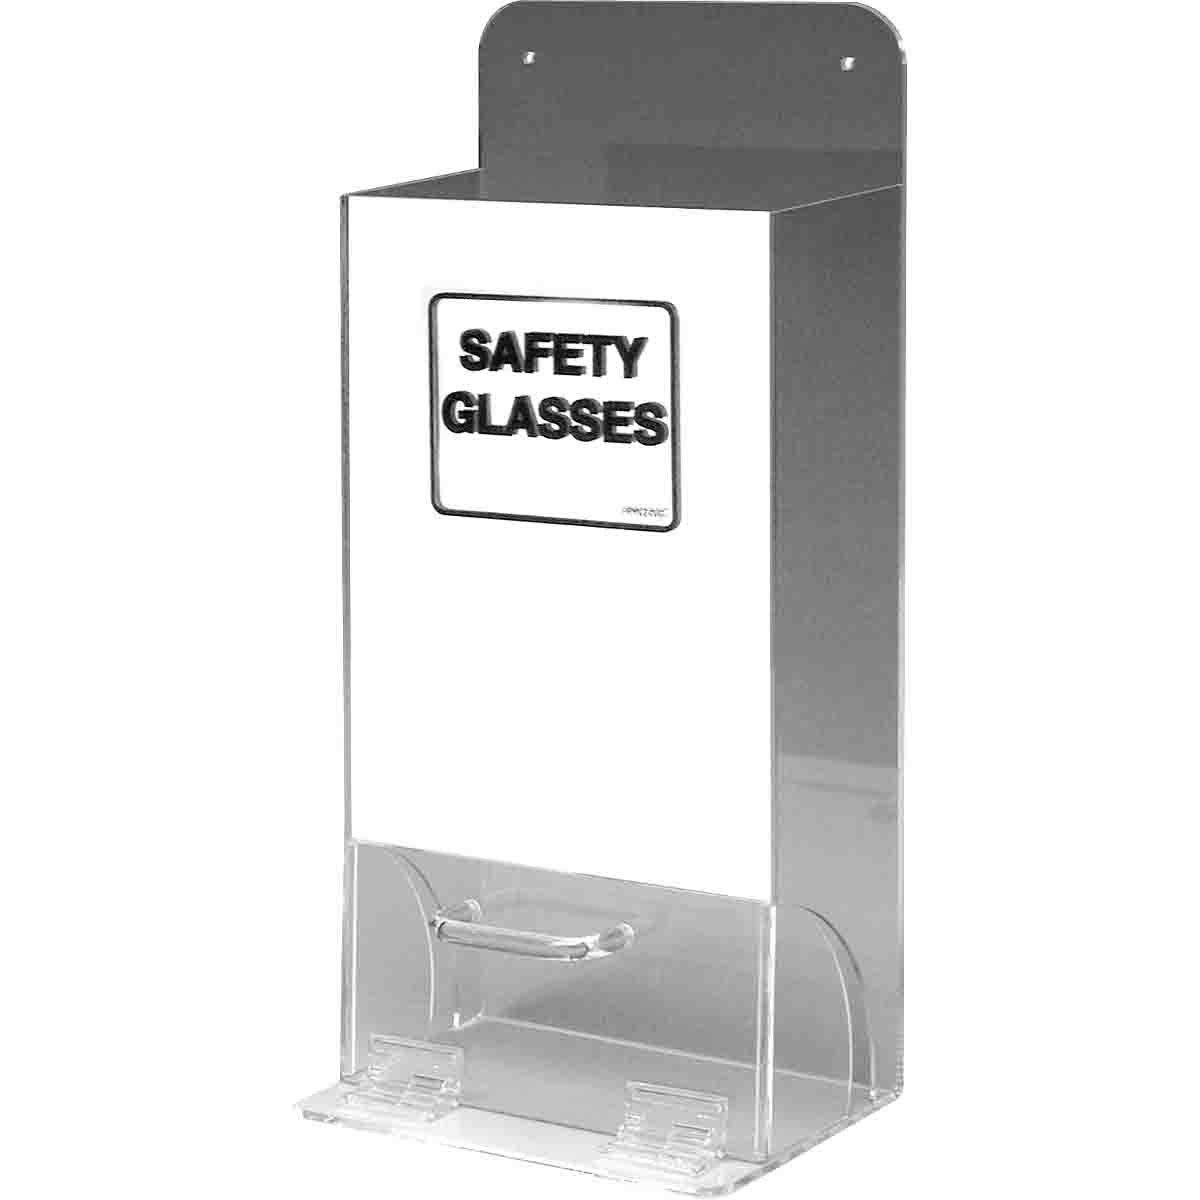 BRADY MVSDM SAFETY GLASS DISPENSER